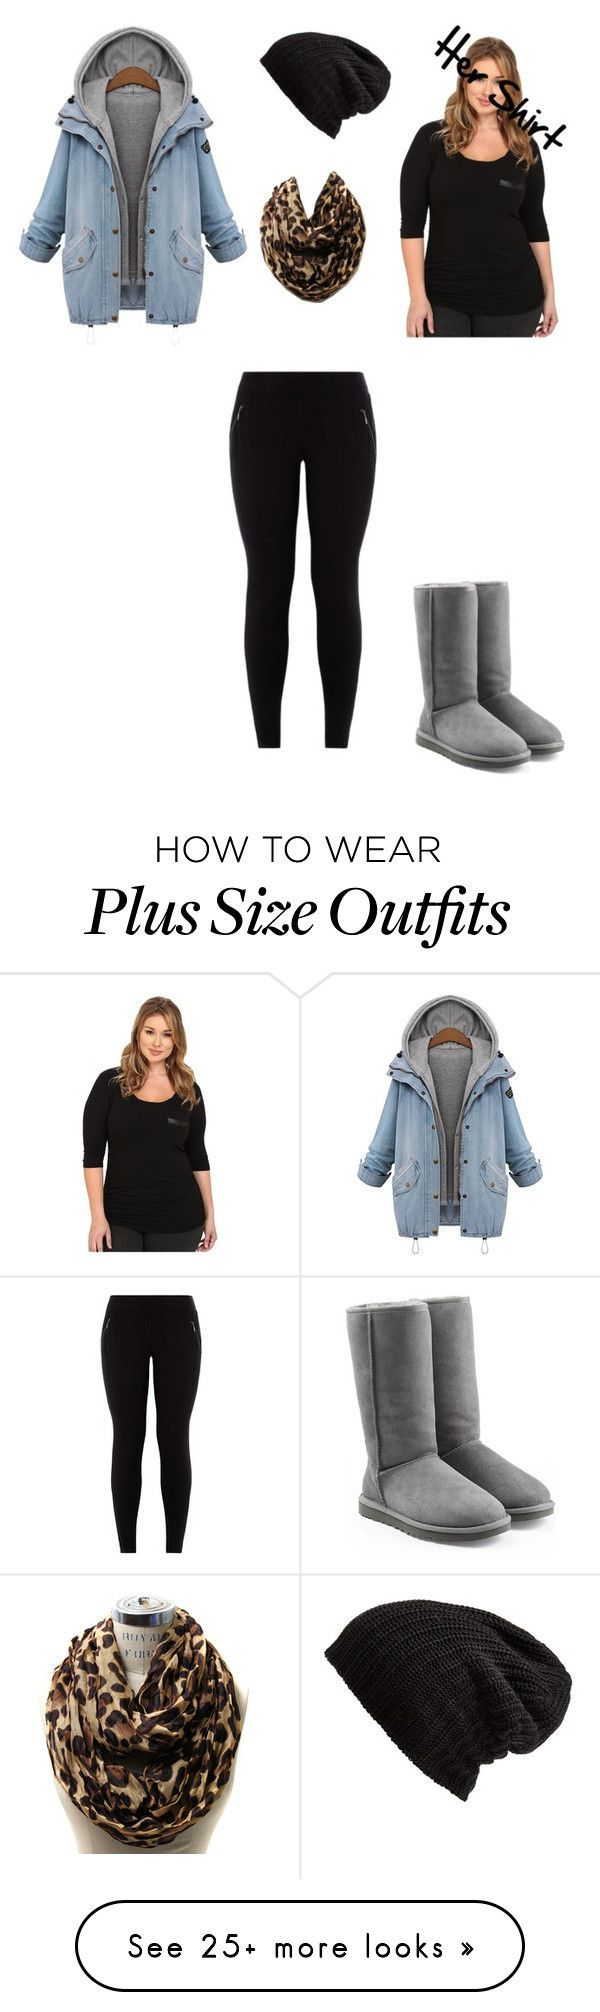 """Untitled #52"" by into-fashion on Polyvore featuring Soybu, UGG Australia, Free People and plus size clothing"